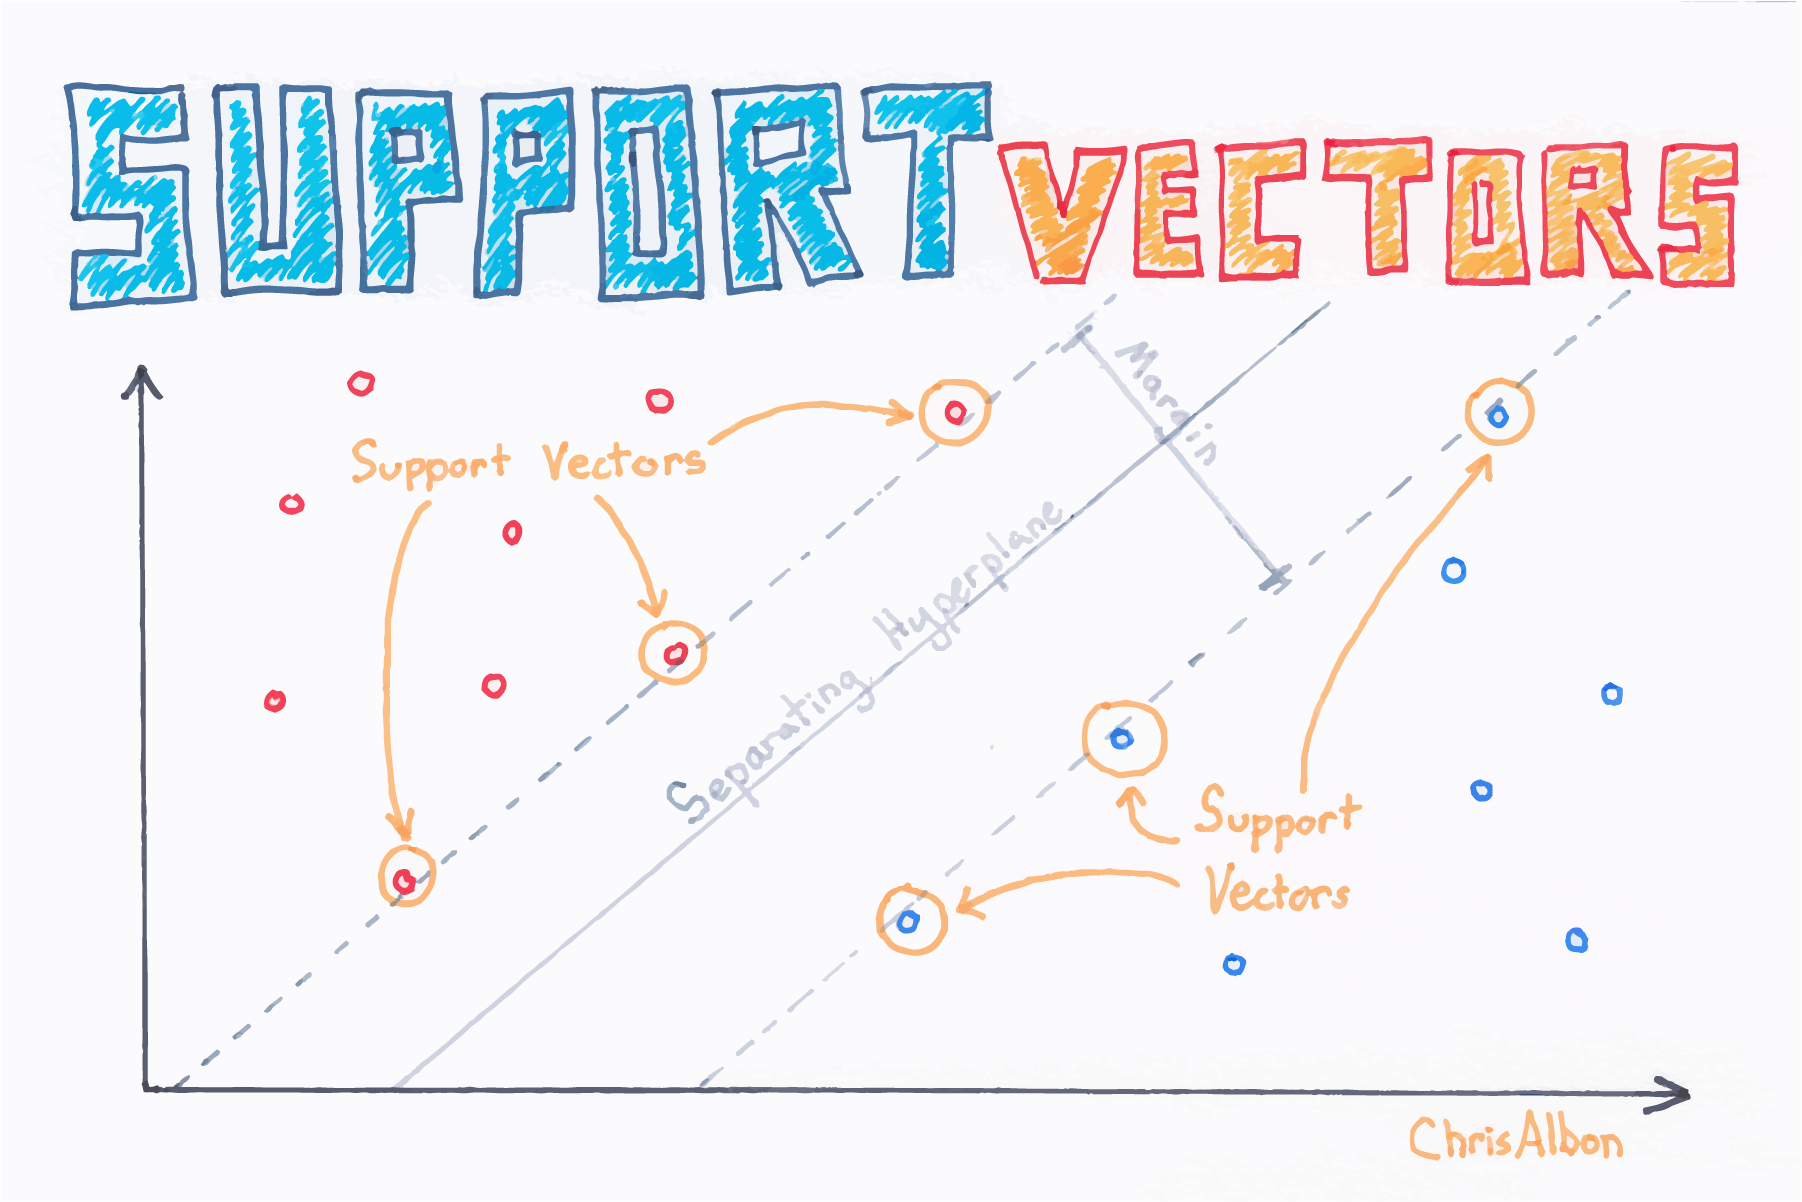 Find Support Vectors